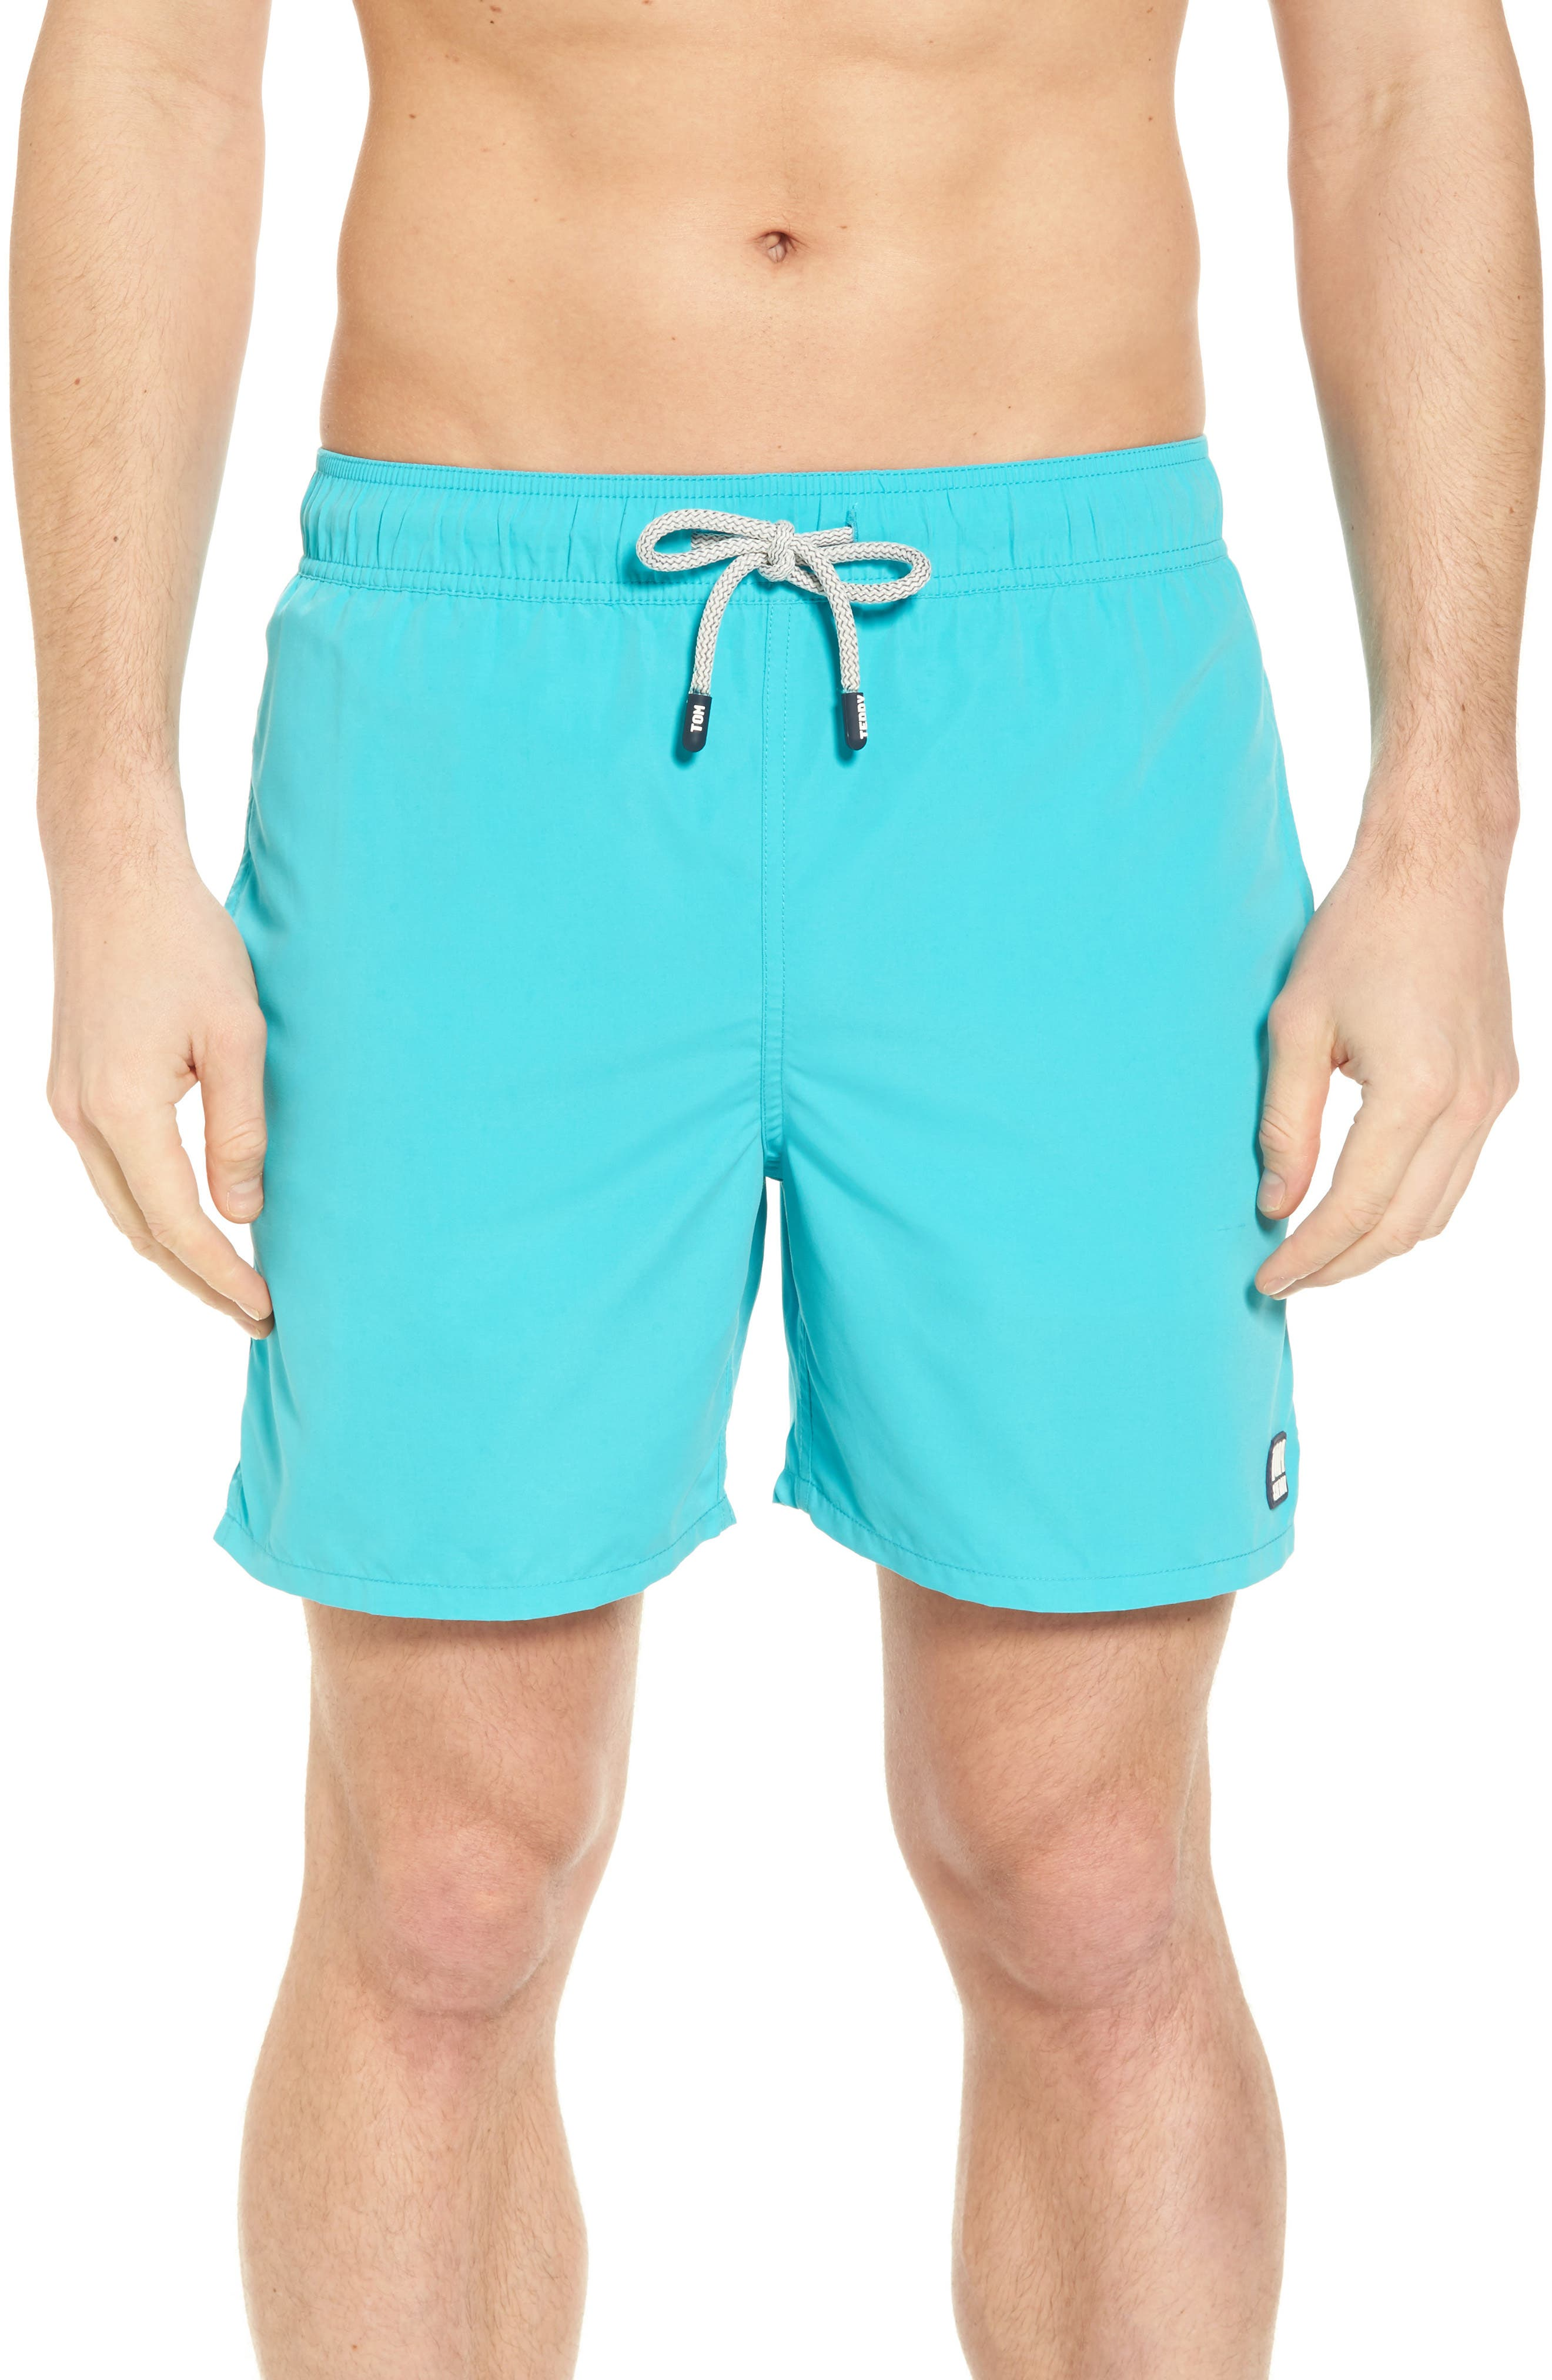 Solid Swim Trunks,                             Main thumbnail 1, color,                             Pool Blue